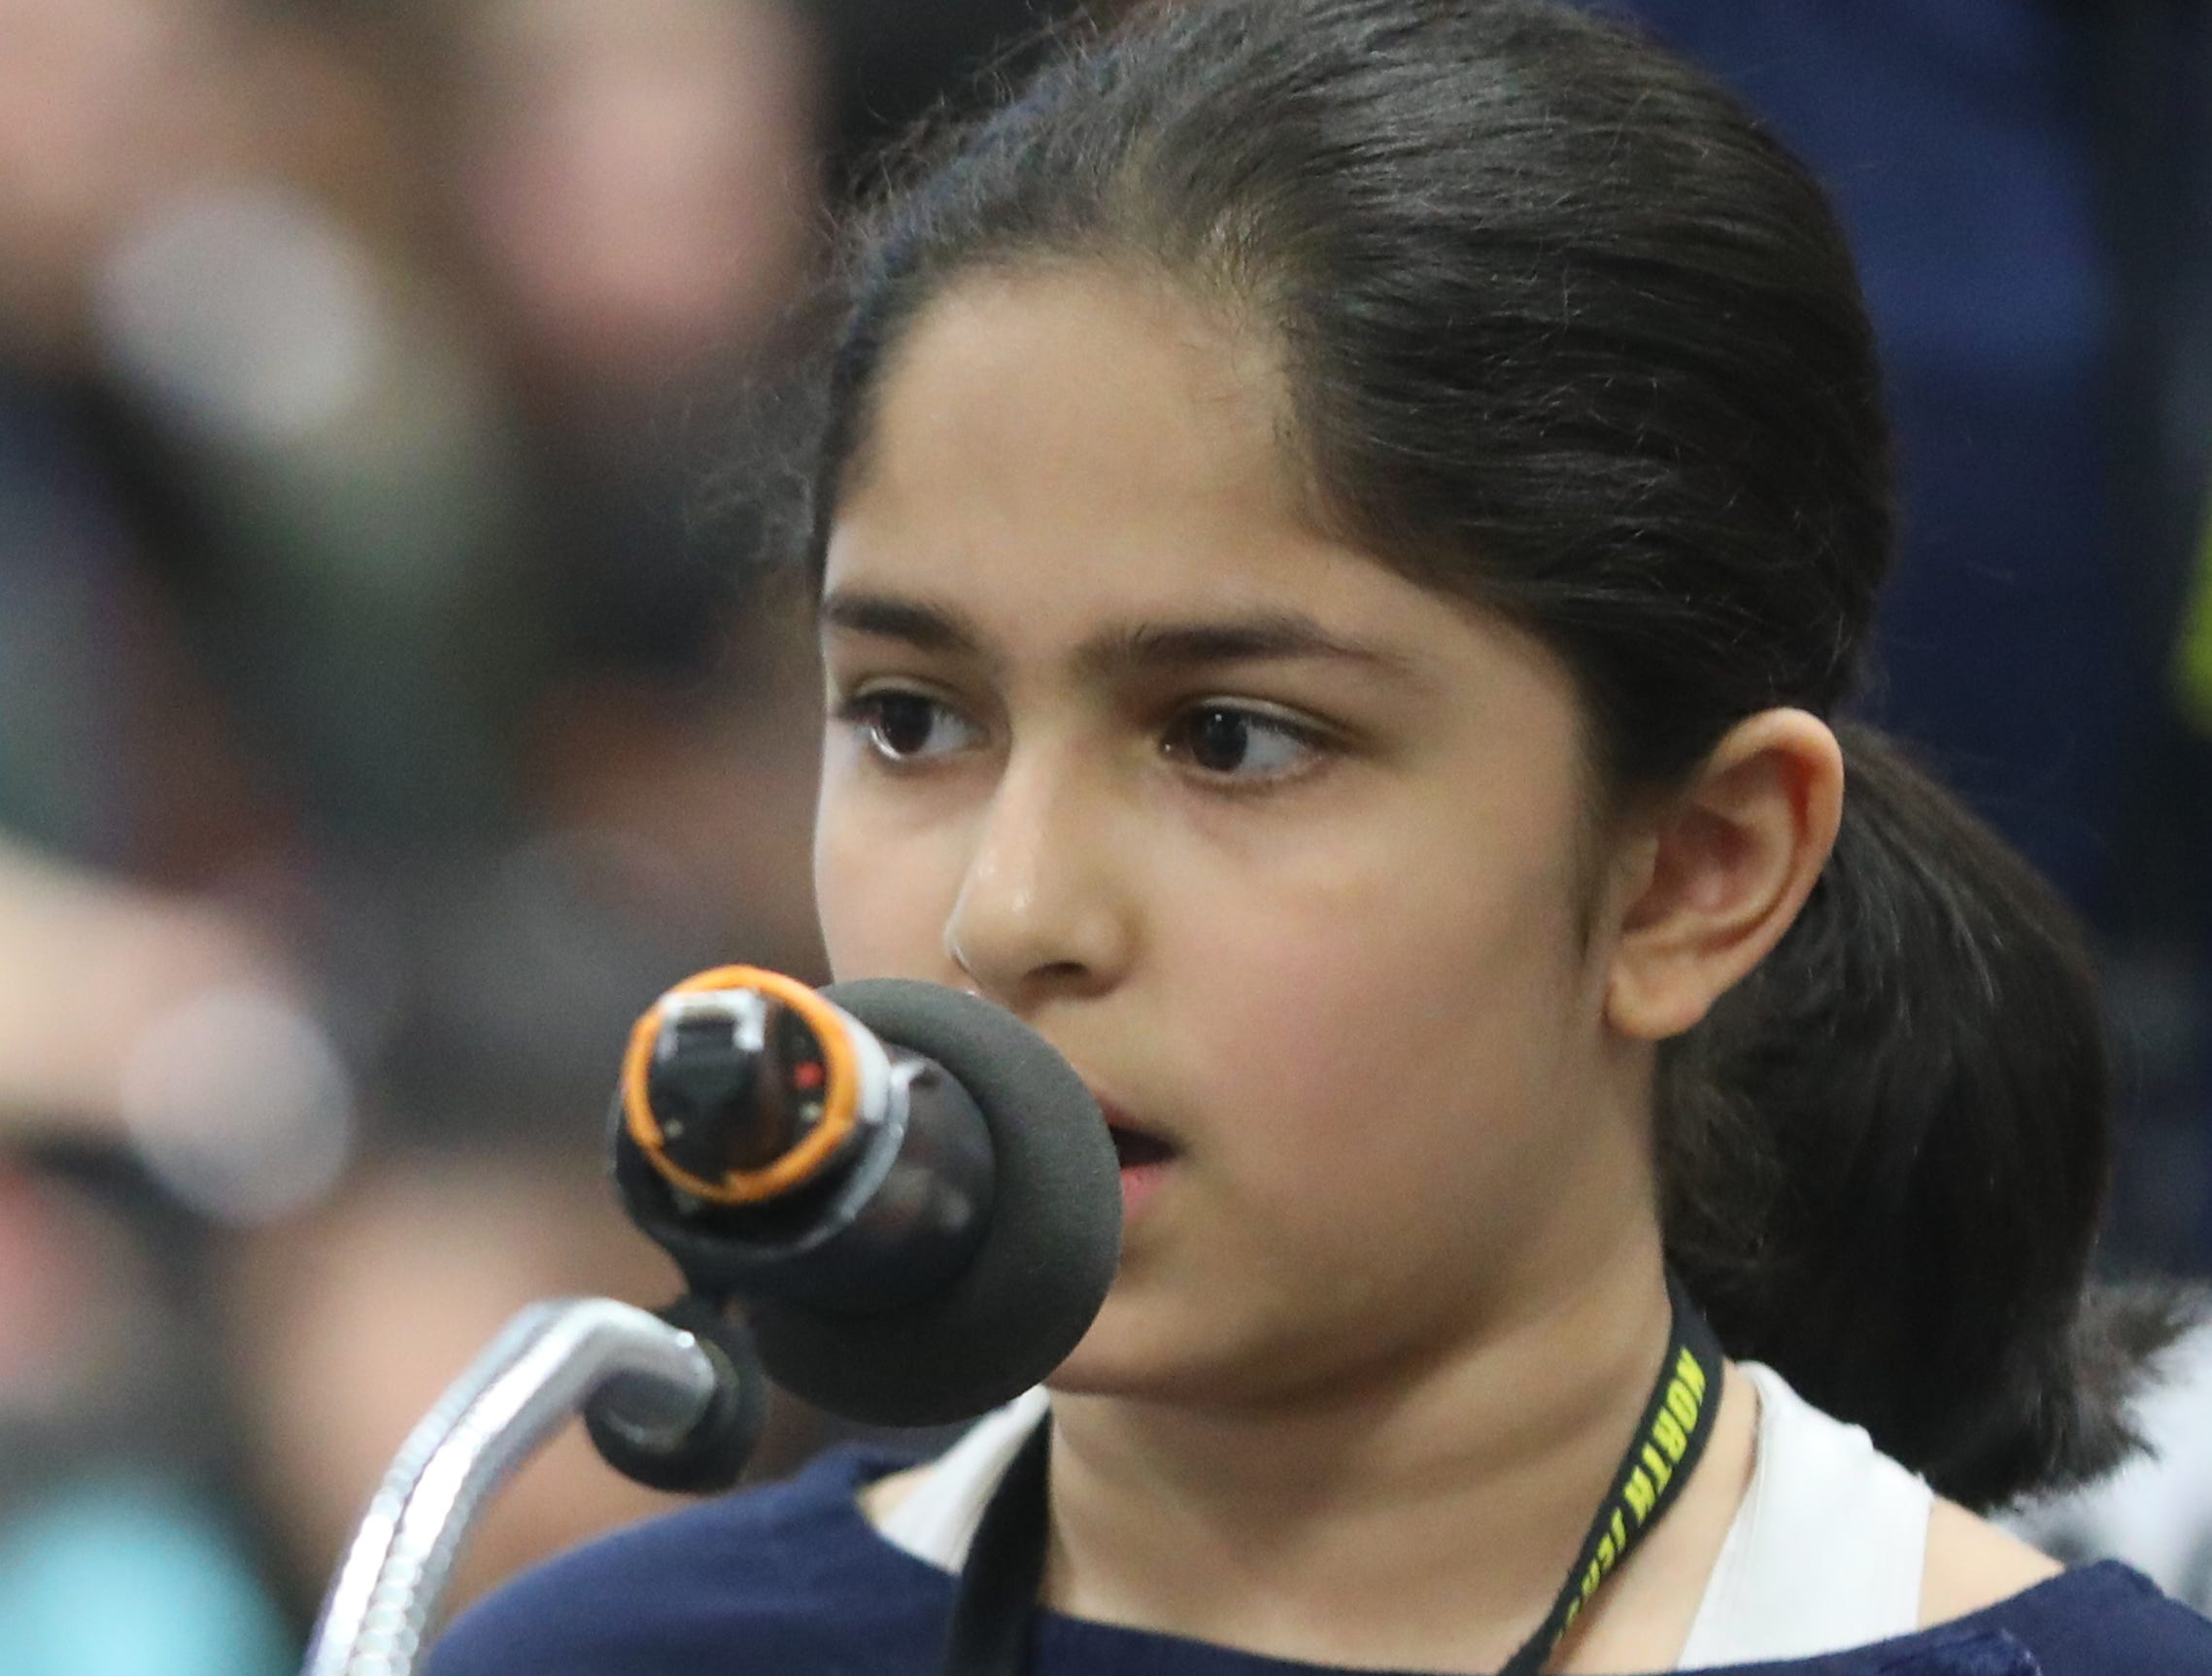 Sachi Kaisare, of Upper Saddle River, competes in the first round of the 2019 North Jersey Spelling Bee, in Paramus. Thursday, March 14, 2019